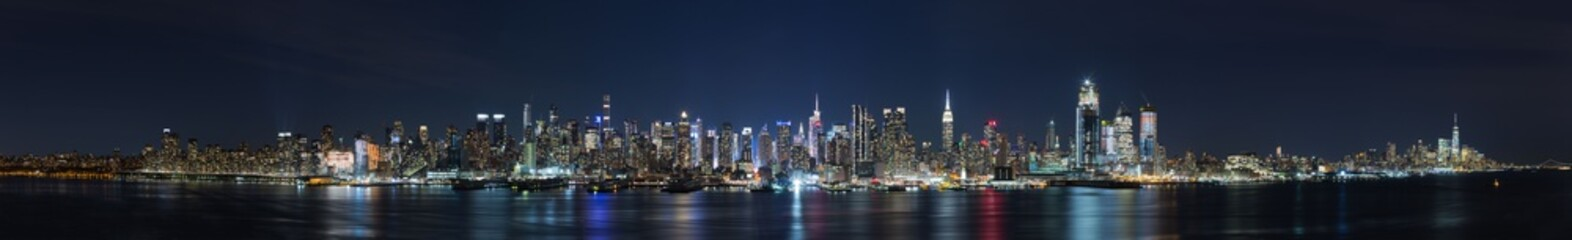 Panoramic view of the night in Manhattan, cityscapes of New York, USA